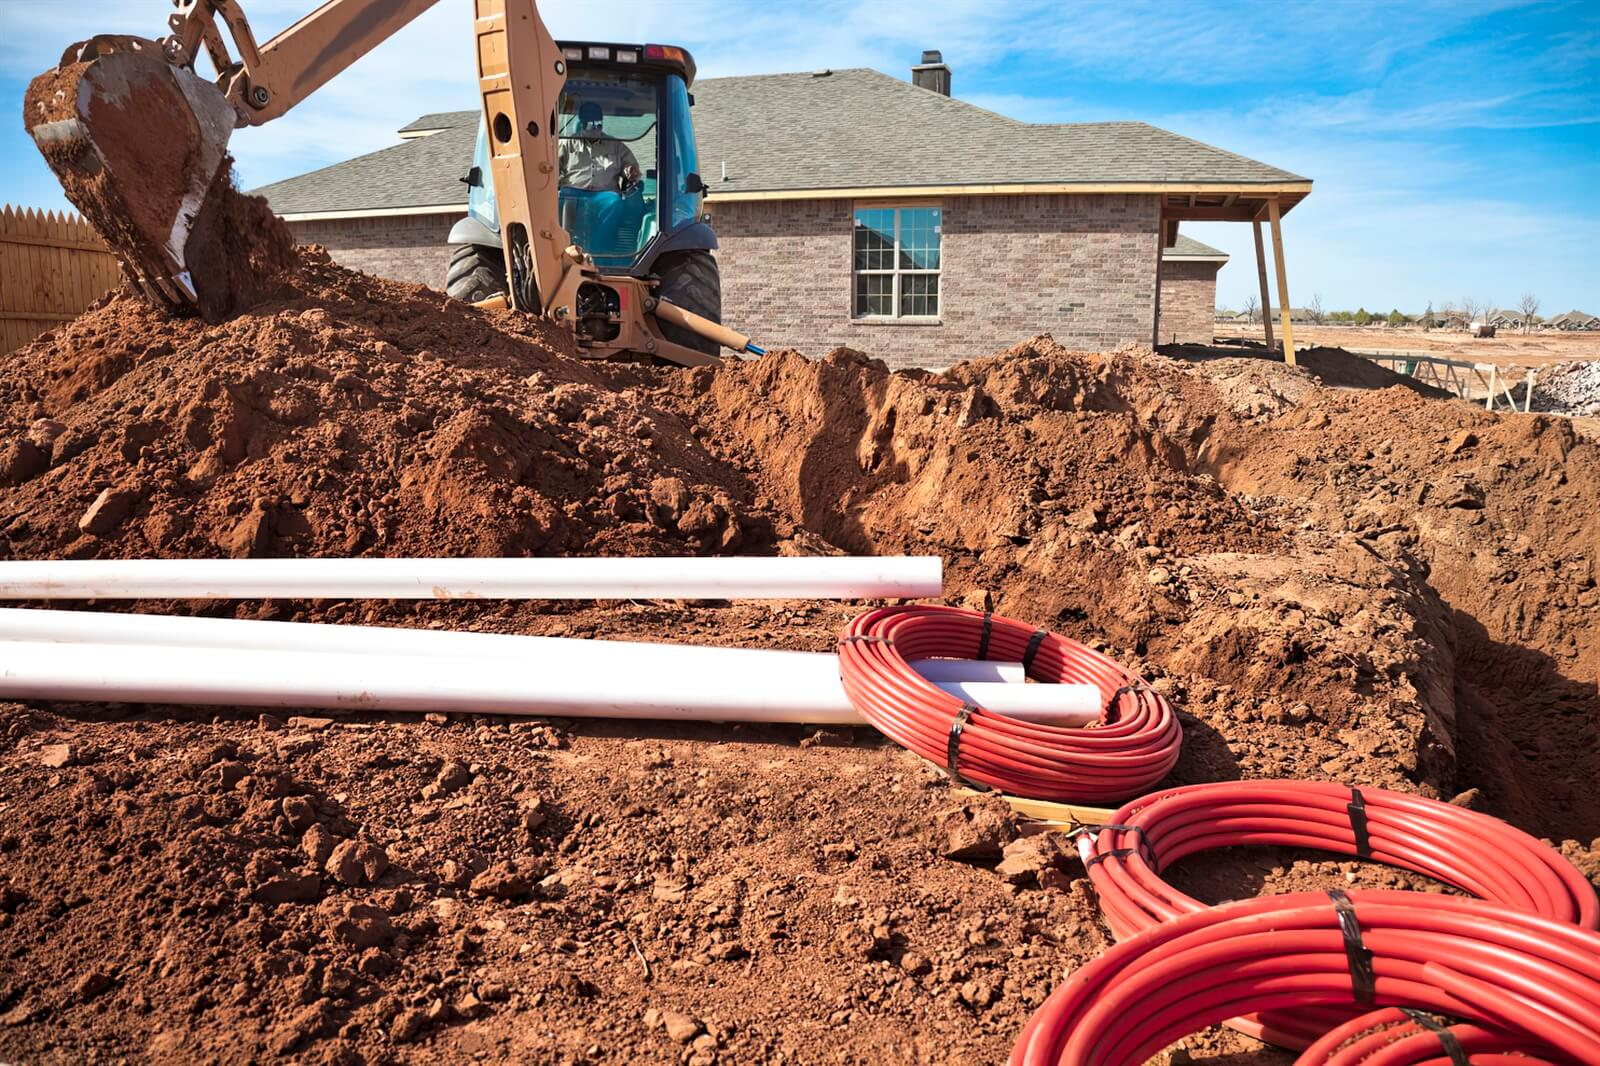 How to Price Plumbing for New House